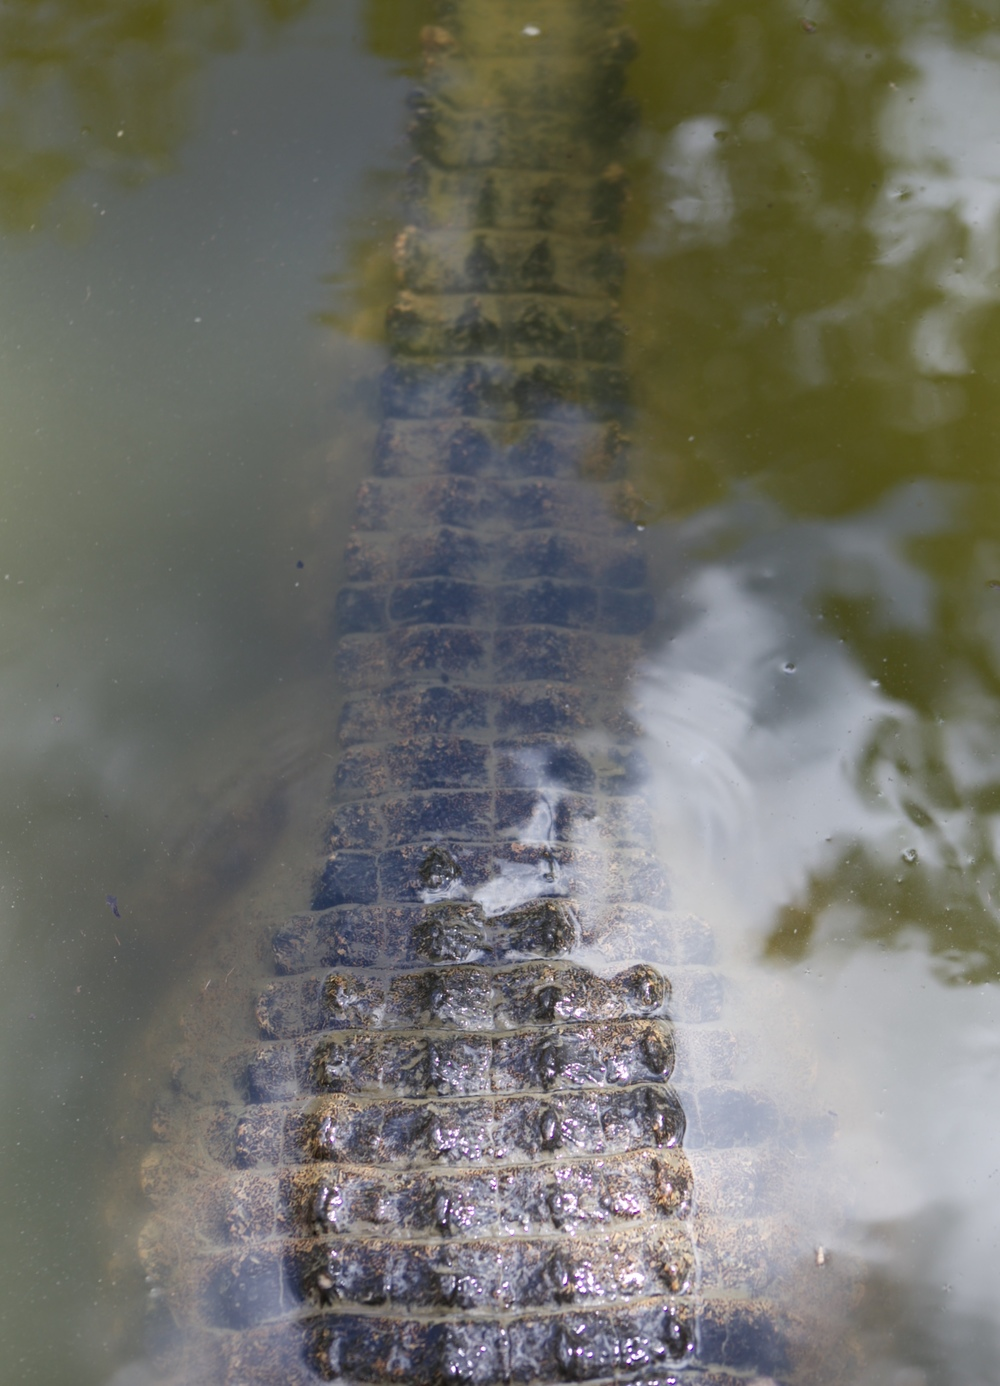 The back and tail of an Australian crocodile.